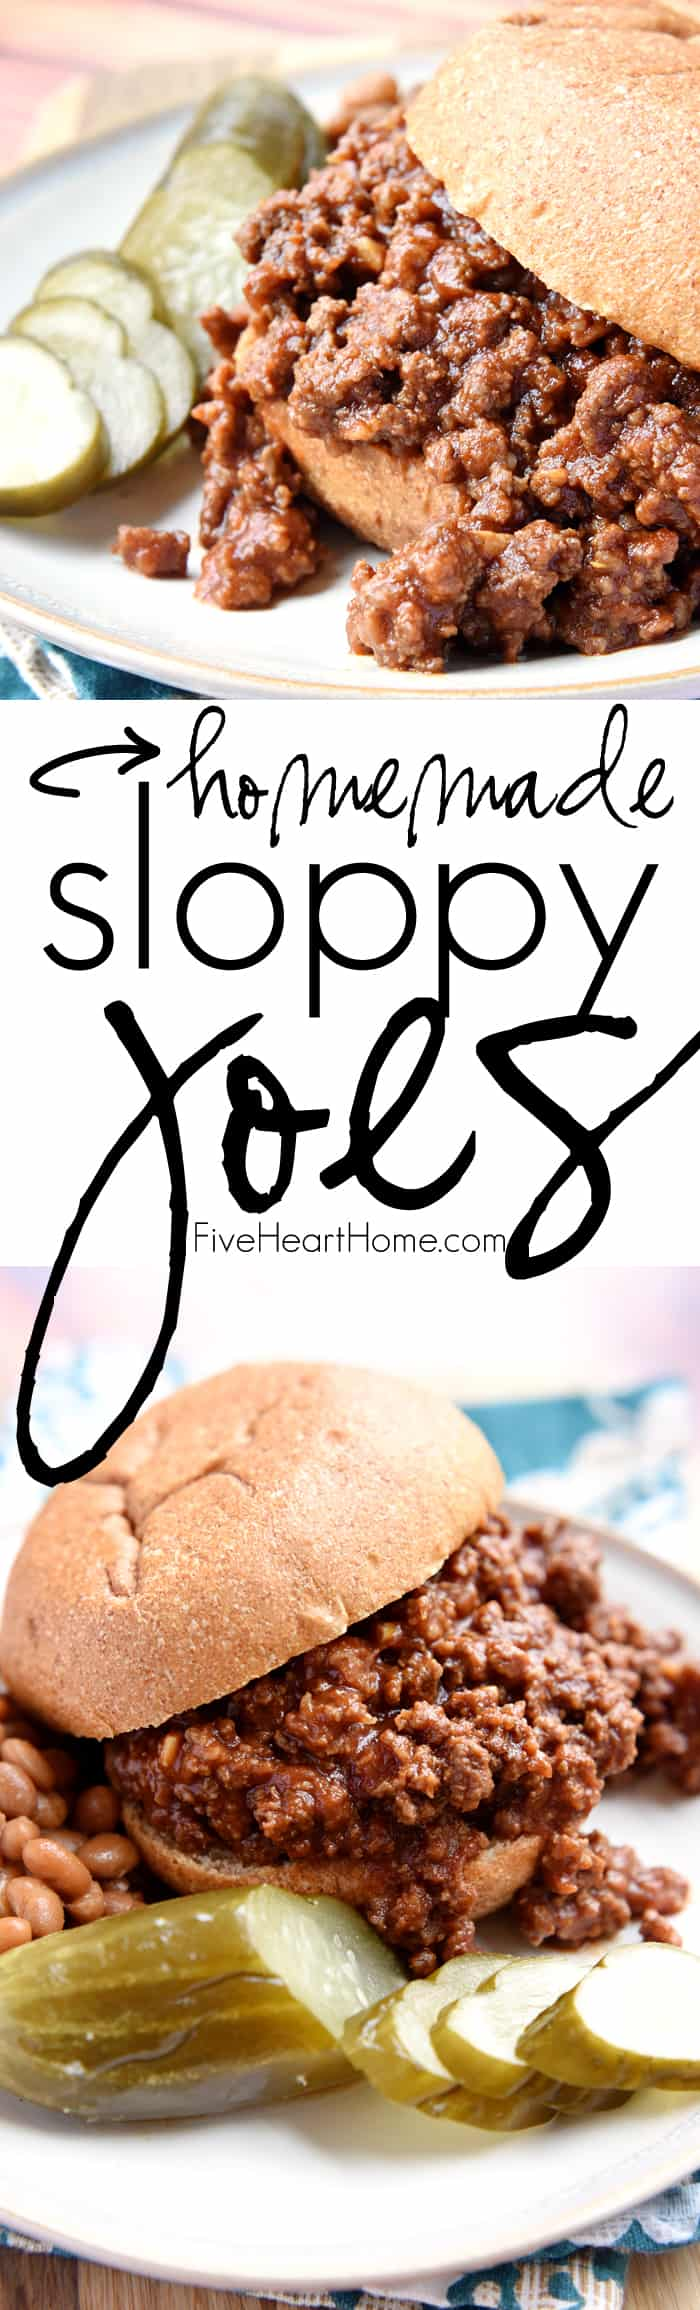 Homemade Sloppy Joes ~ ditch the store-bought can of sauce for these quick and easy, all-natural Sloppy Joes with no additives or preservatives...and they taste better, too! | FiveHeartHome.com